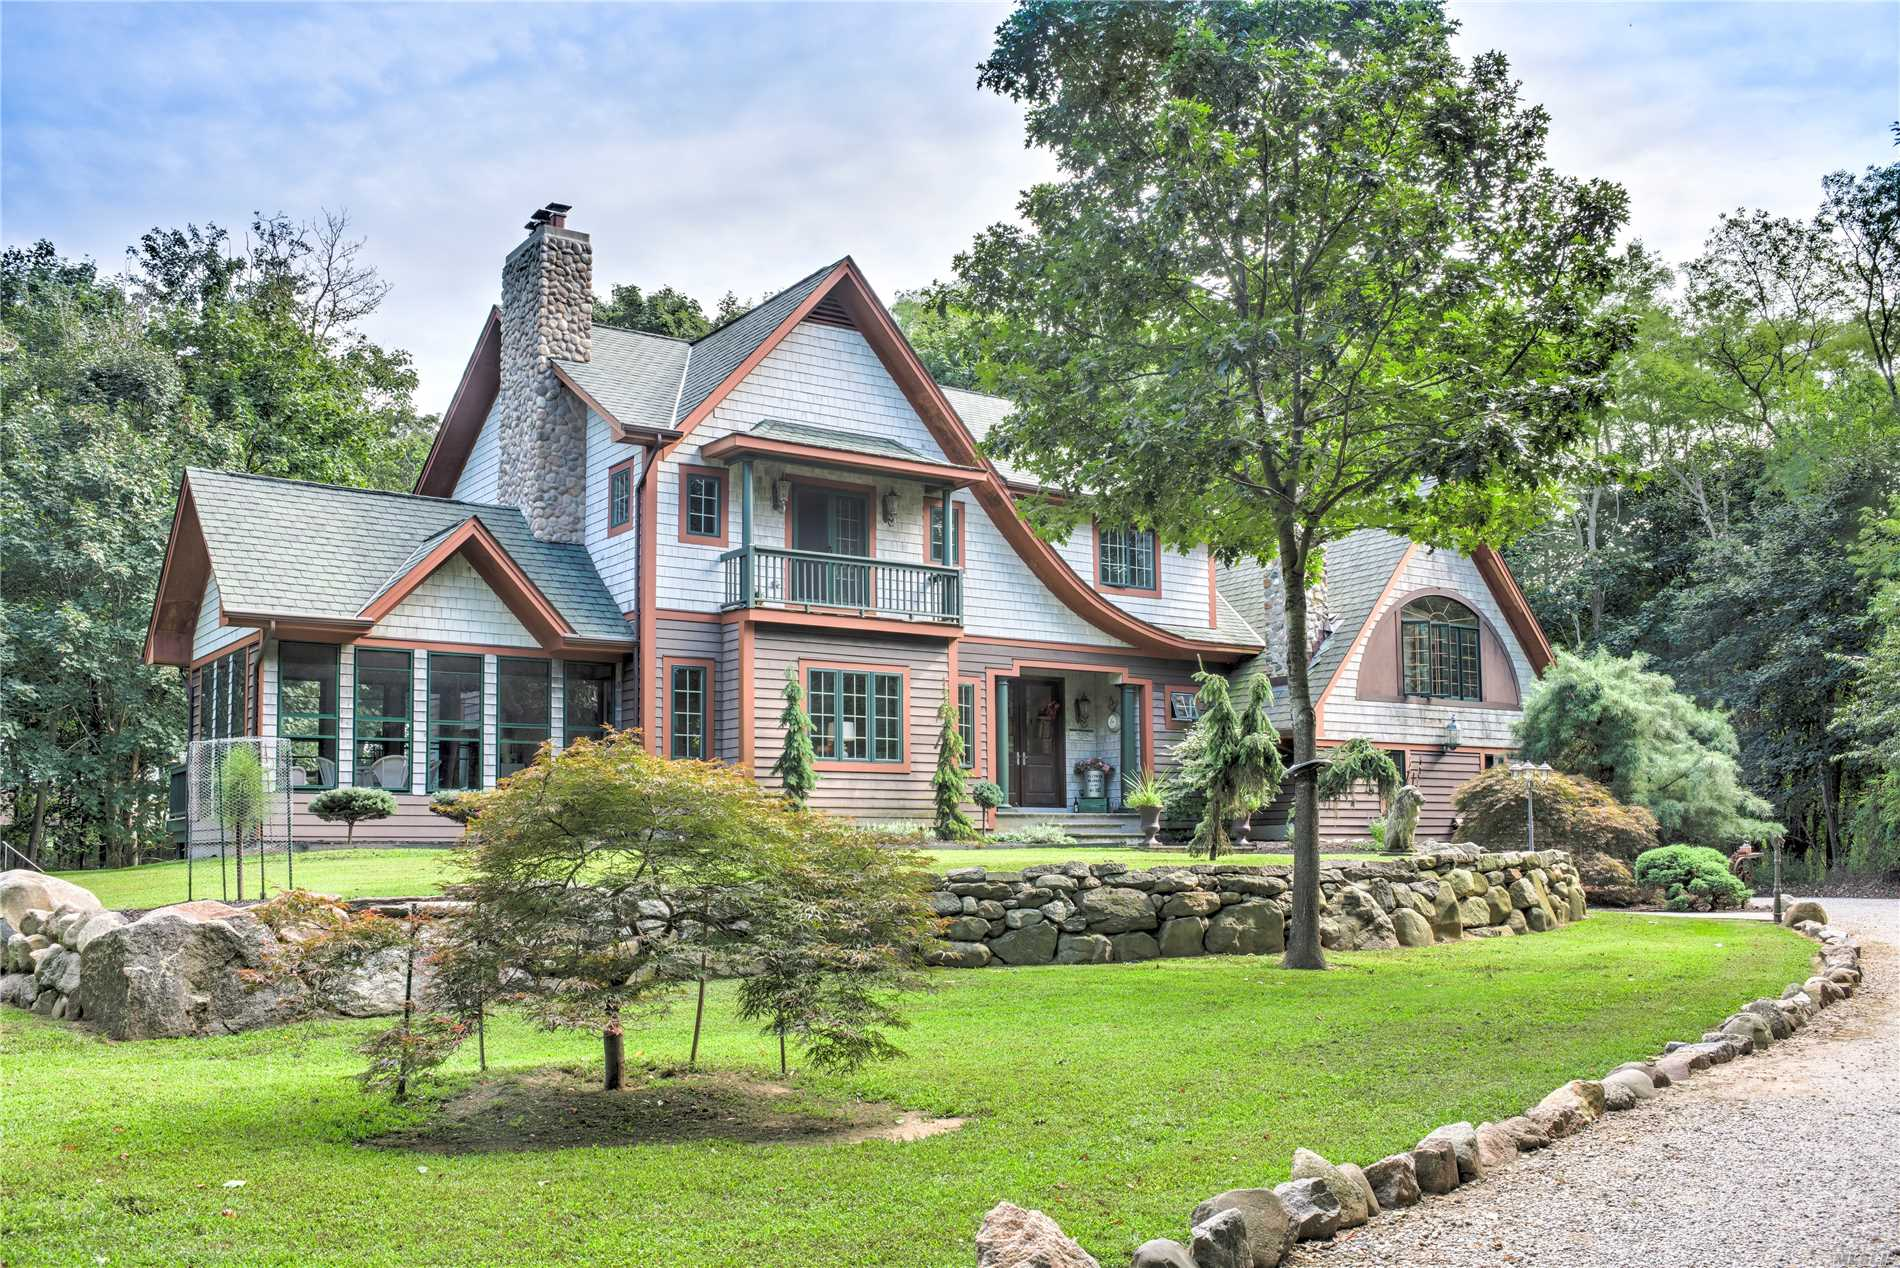 Southold, North Fork Waterfront Farm Estate: The Hive - Recent Top-Tier Construction Is Apparant In This Spectacular Home Featuring Dream Kitchen W/48 Wolf Range, Butlers Pantry, Spacious Living Room W/Fp, Dr, Large Den/Gather Room, Plus 3 En Suite Bedrooms And Separate Wing W/2 Br's And Bath. Large Horse Barn And Paddocks - Rented; 350' On Arshomomaque To Raise Oysters Or Kyack/Boat...4+ Car Garage.  Close To All Beaches, Top Restaurants And Quiet, Elegant Living. Subdivideable W Town Appr